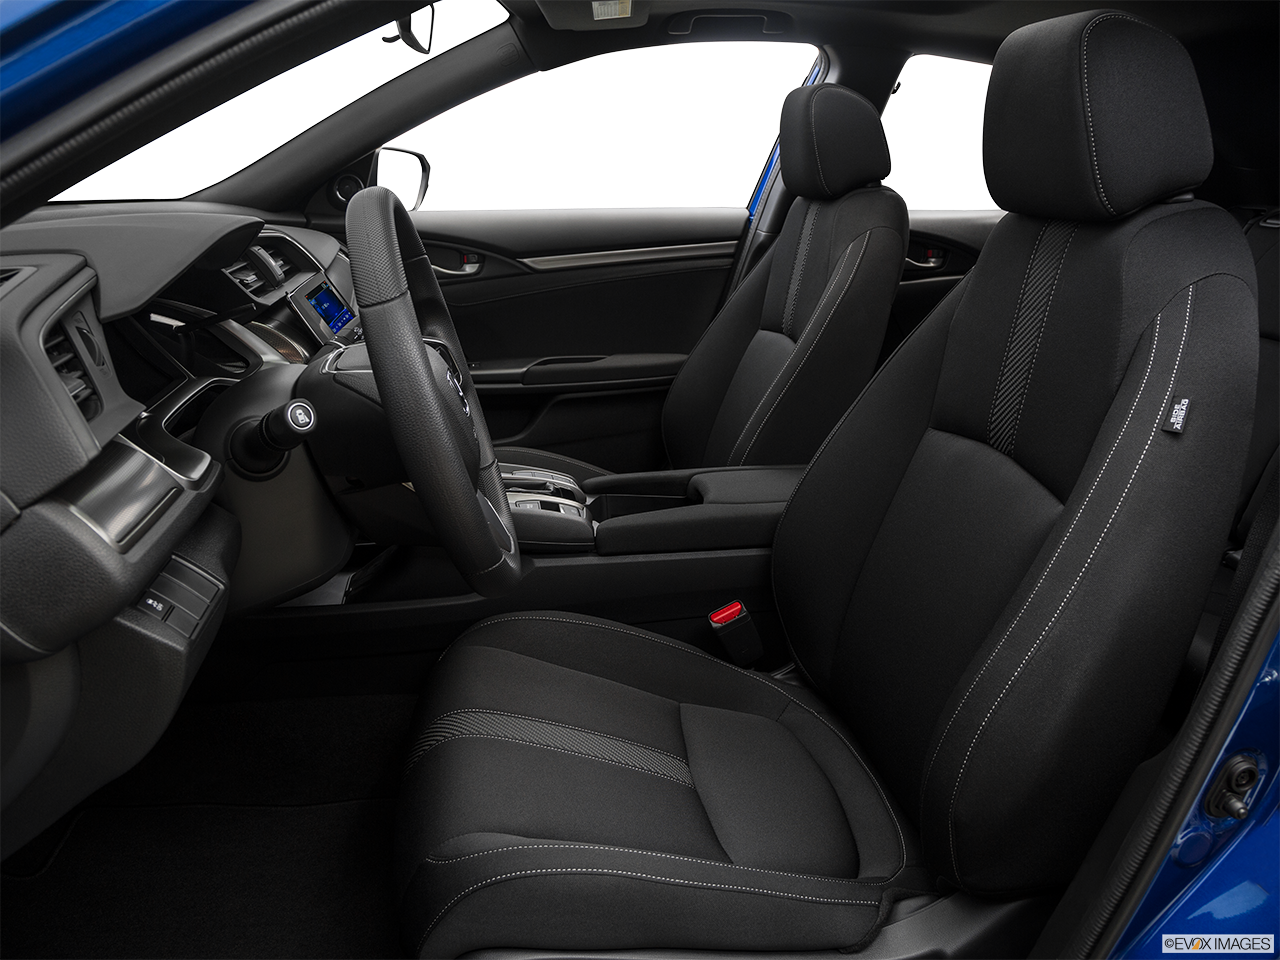 Research The 2017 Honda Civic in Moreno Valley